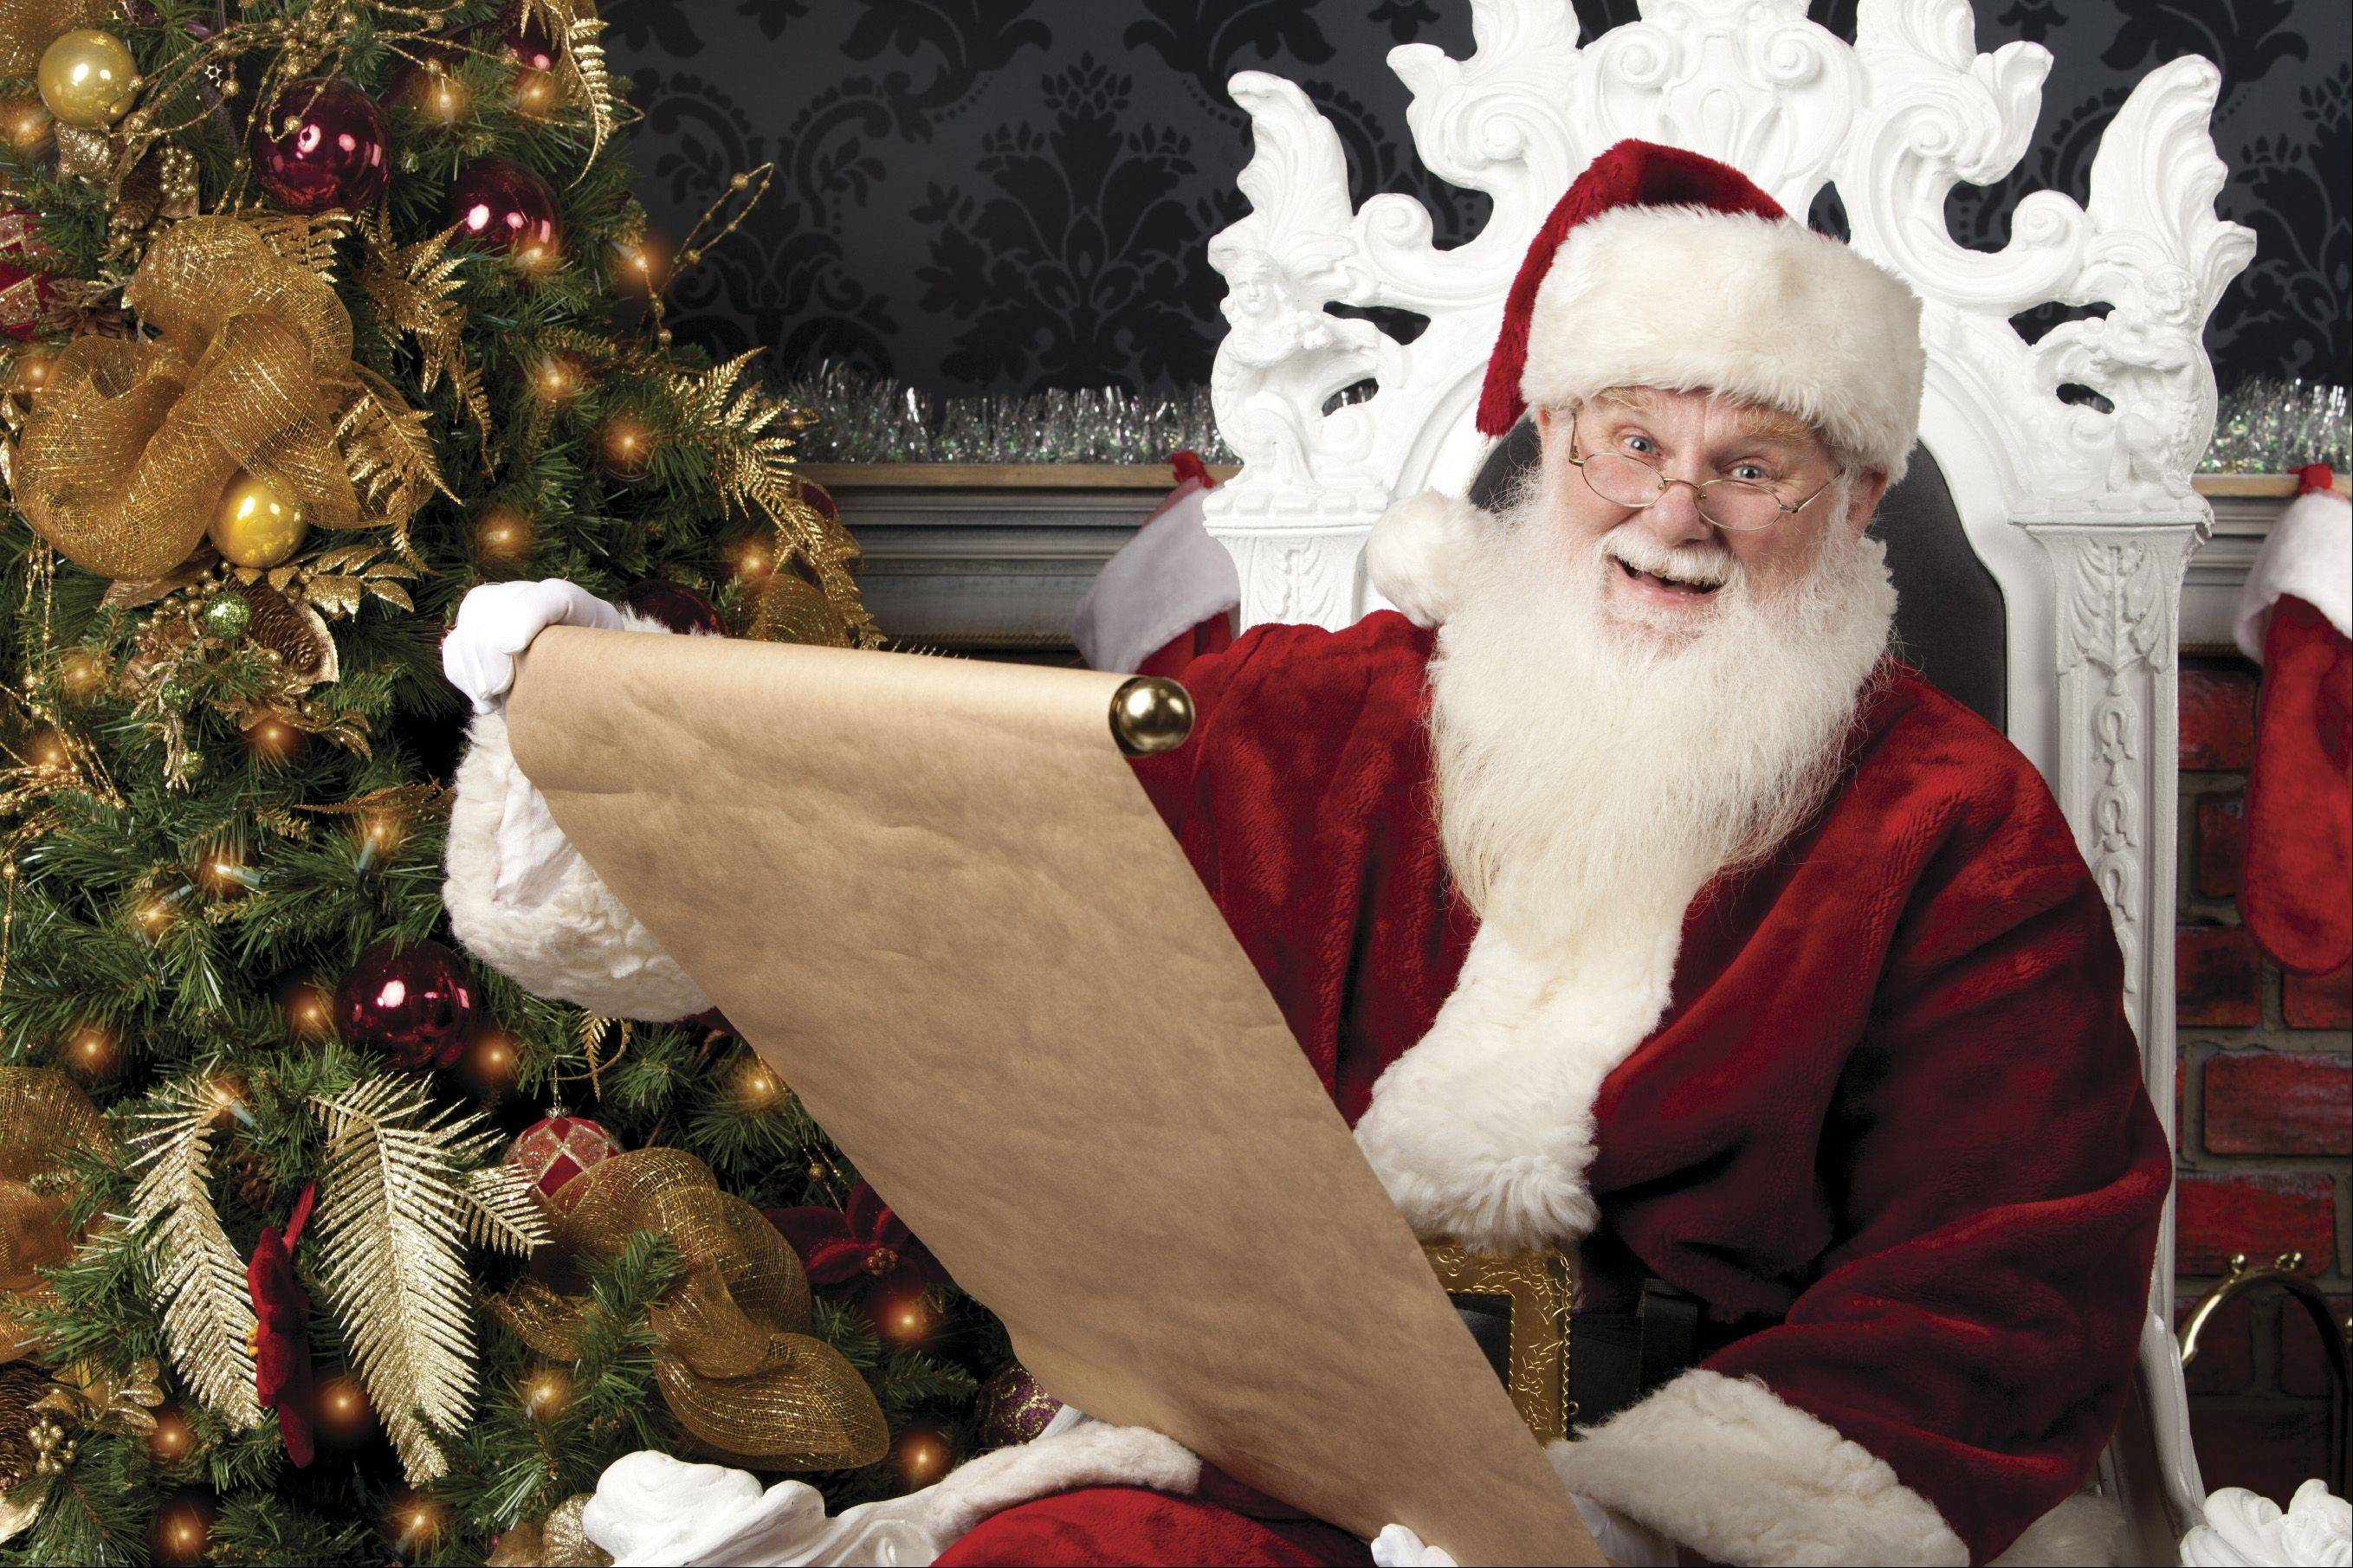 This weekend, Santa will make the rounds at Algonquin and Geneva Commons, visiting stores and posing for photos.